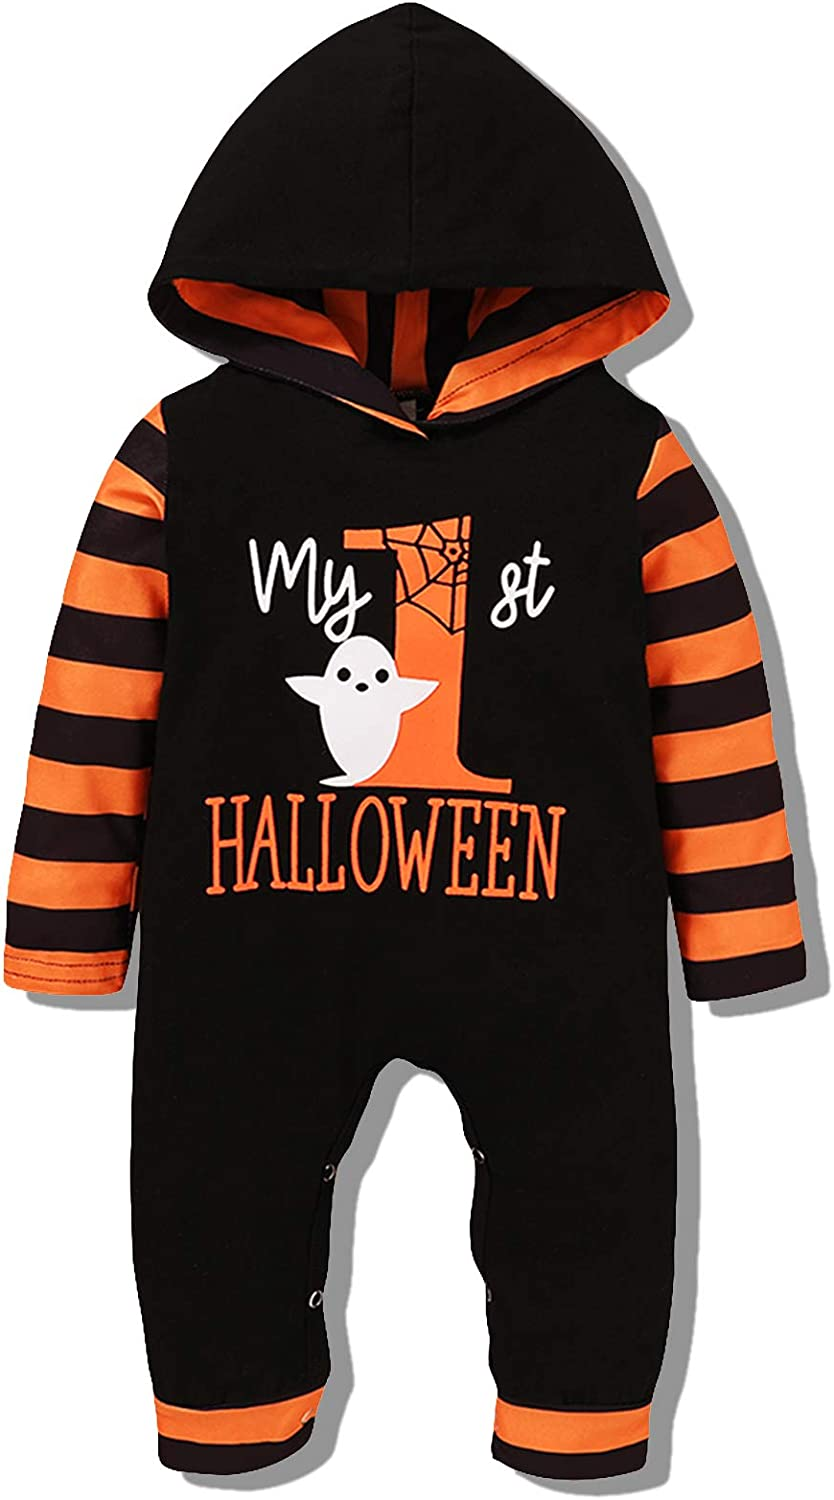 WYFC Halloween SEAL limited product Baby Girl Romper H Clothes Max 82% OFF Unisex